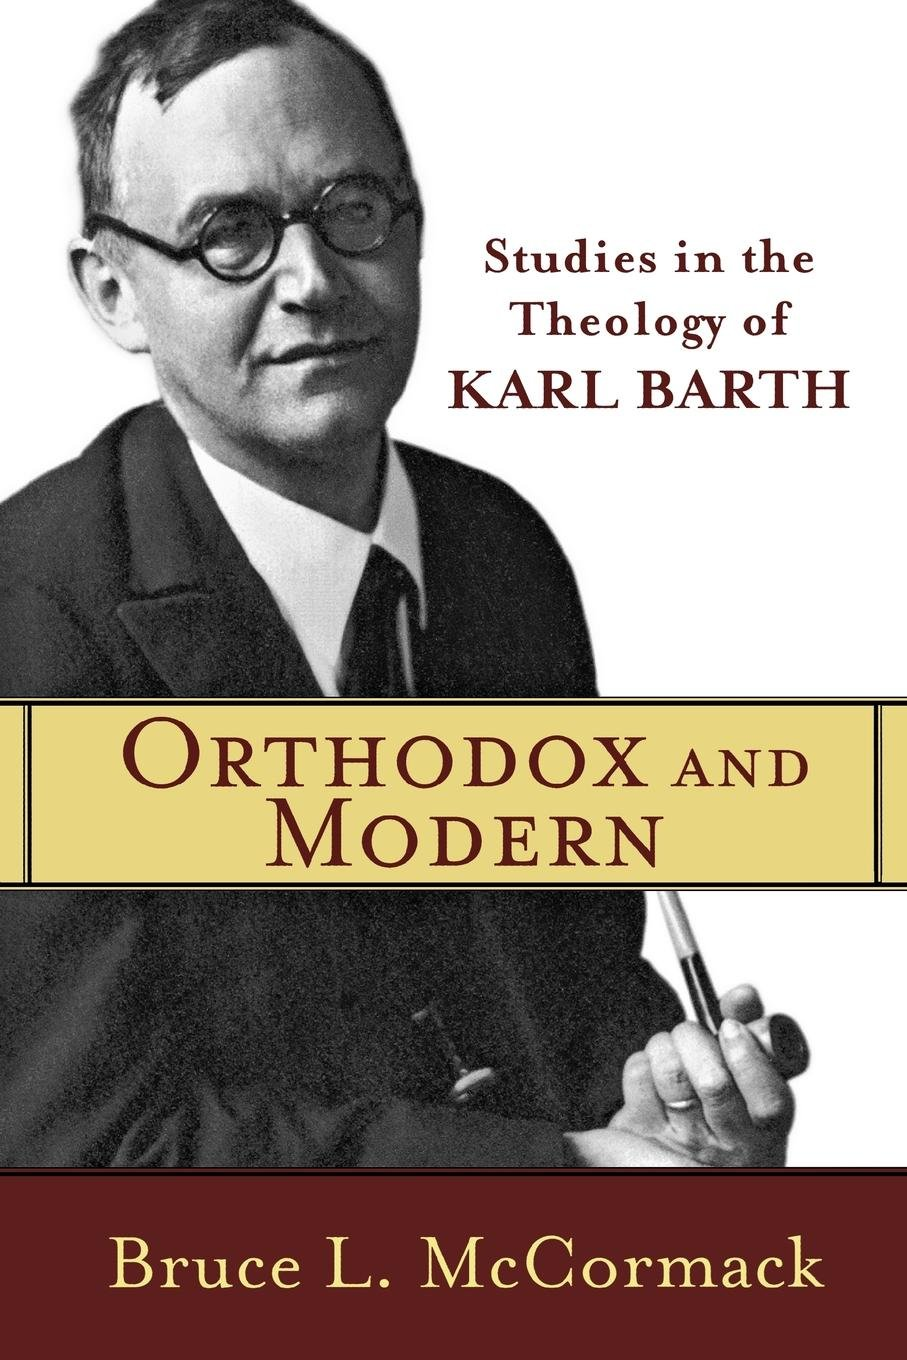 Orthodox and Modern: Studies in the Theology of Karl Barth PDF